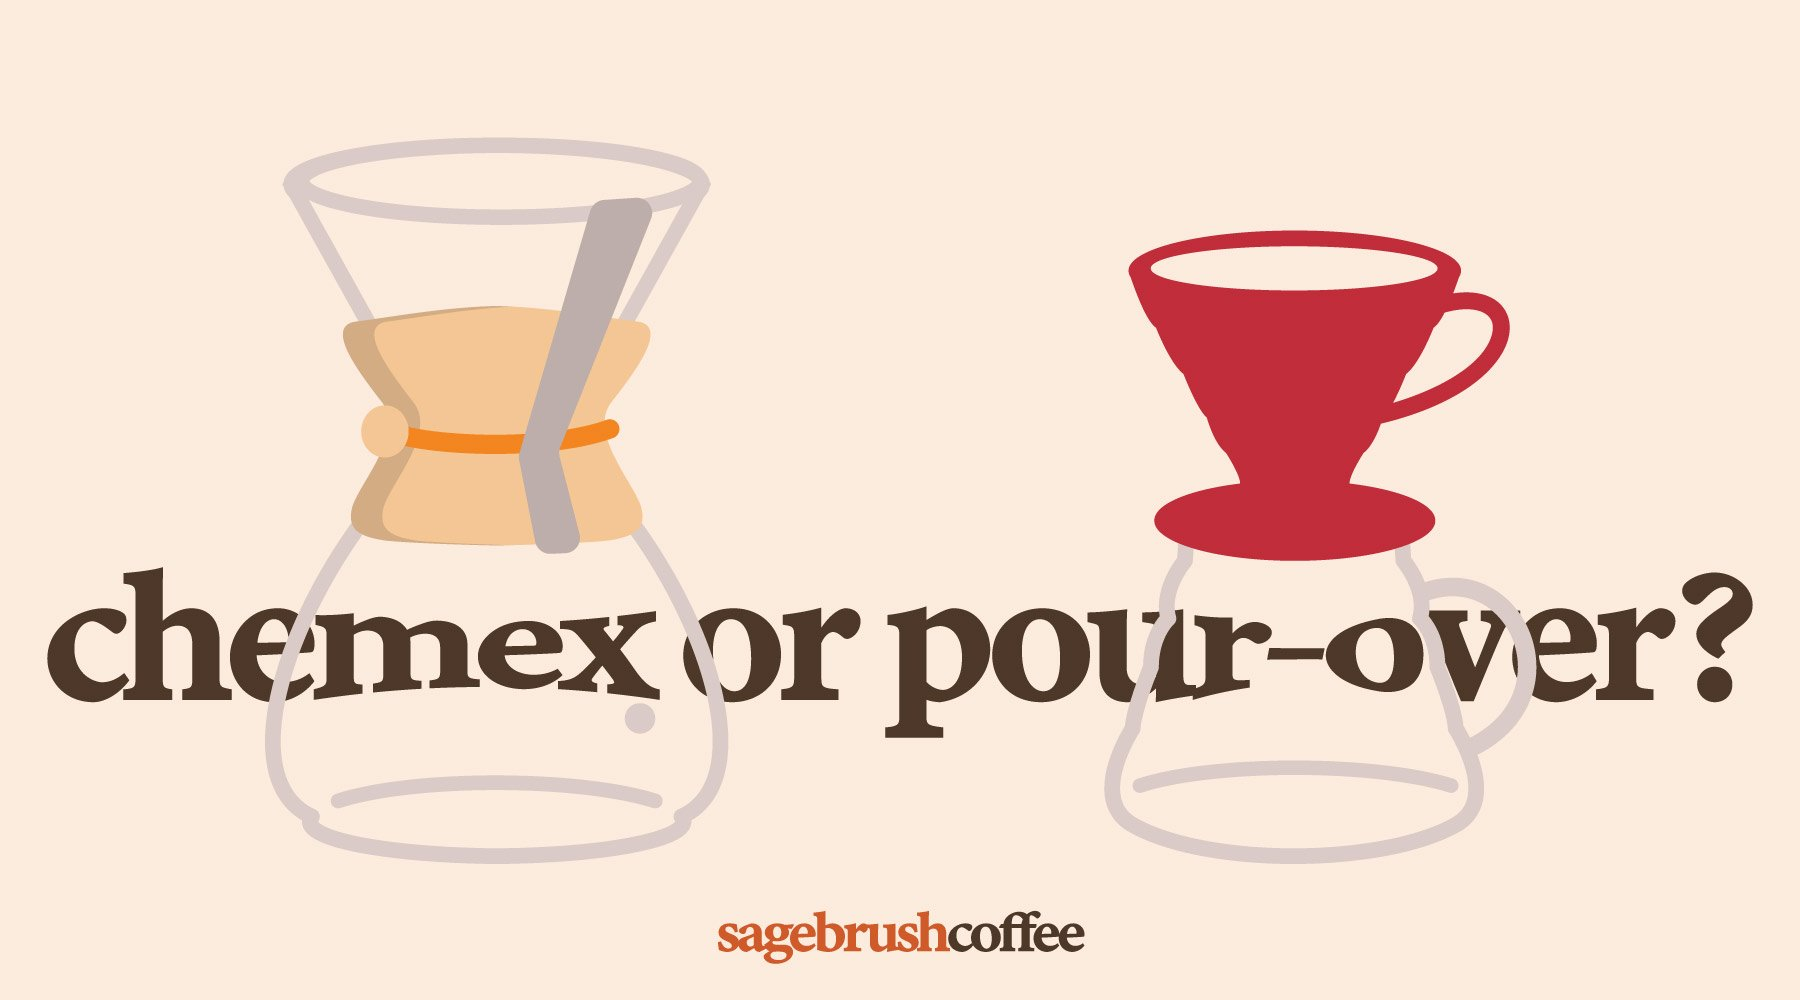 What's The Difference Between A Chemex & A Pour Over